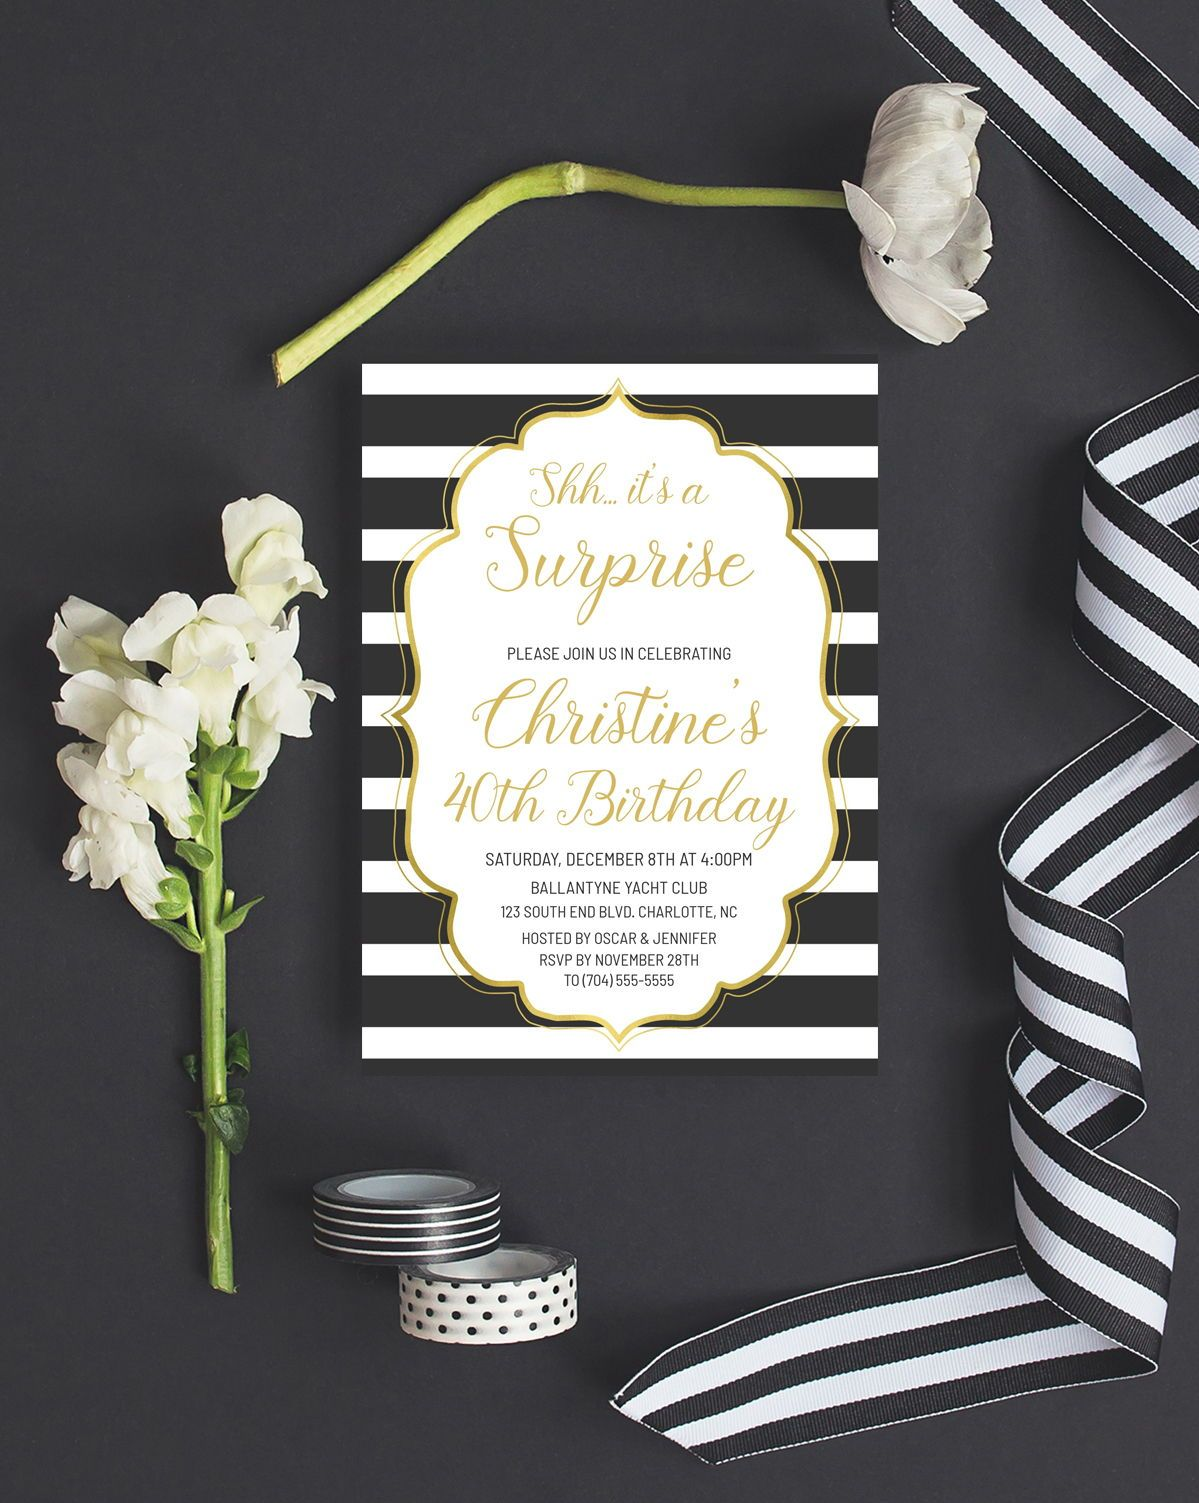 Surprise Birthday Party Invitations Etsy